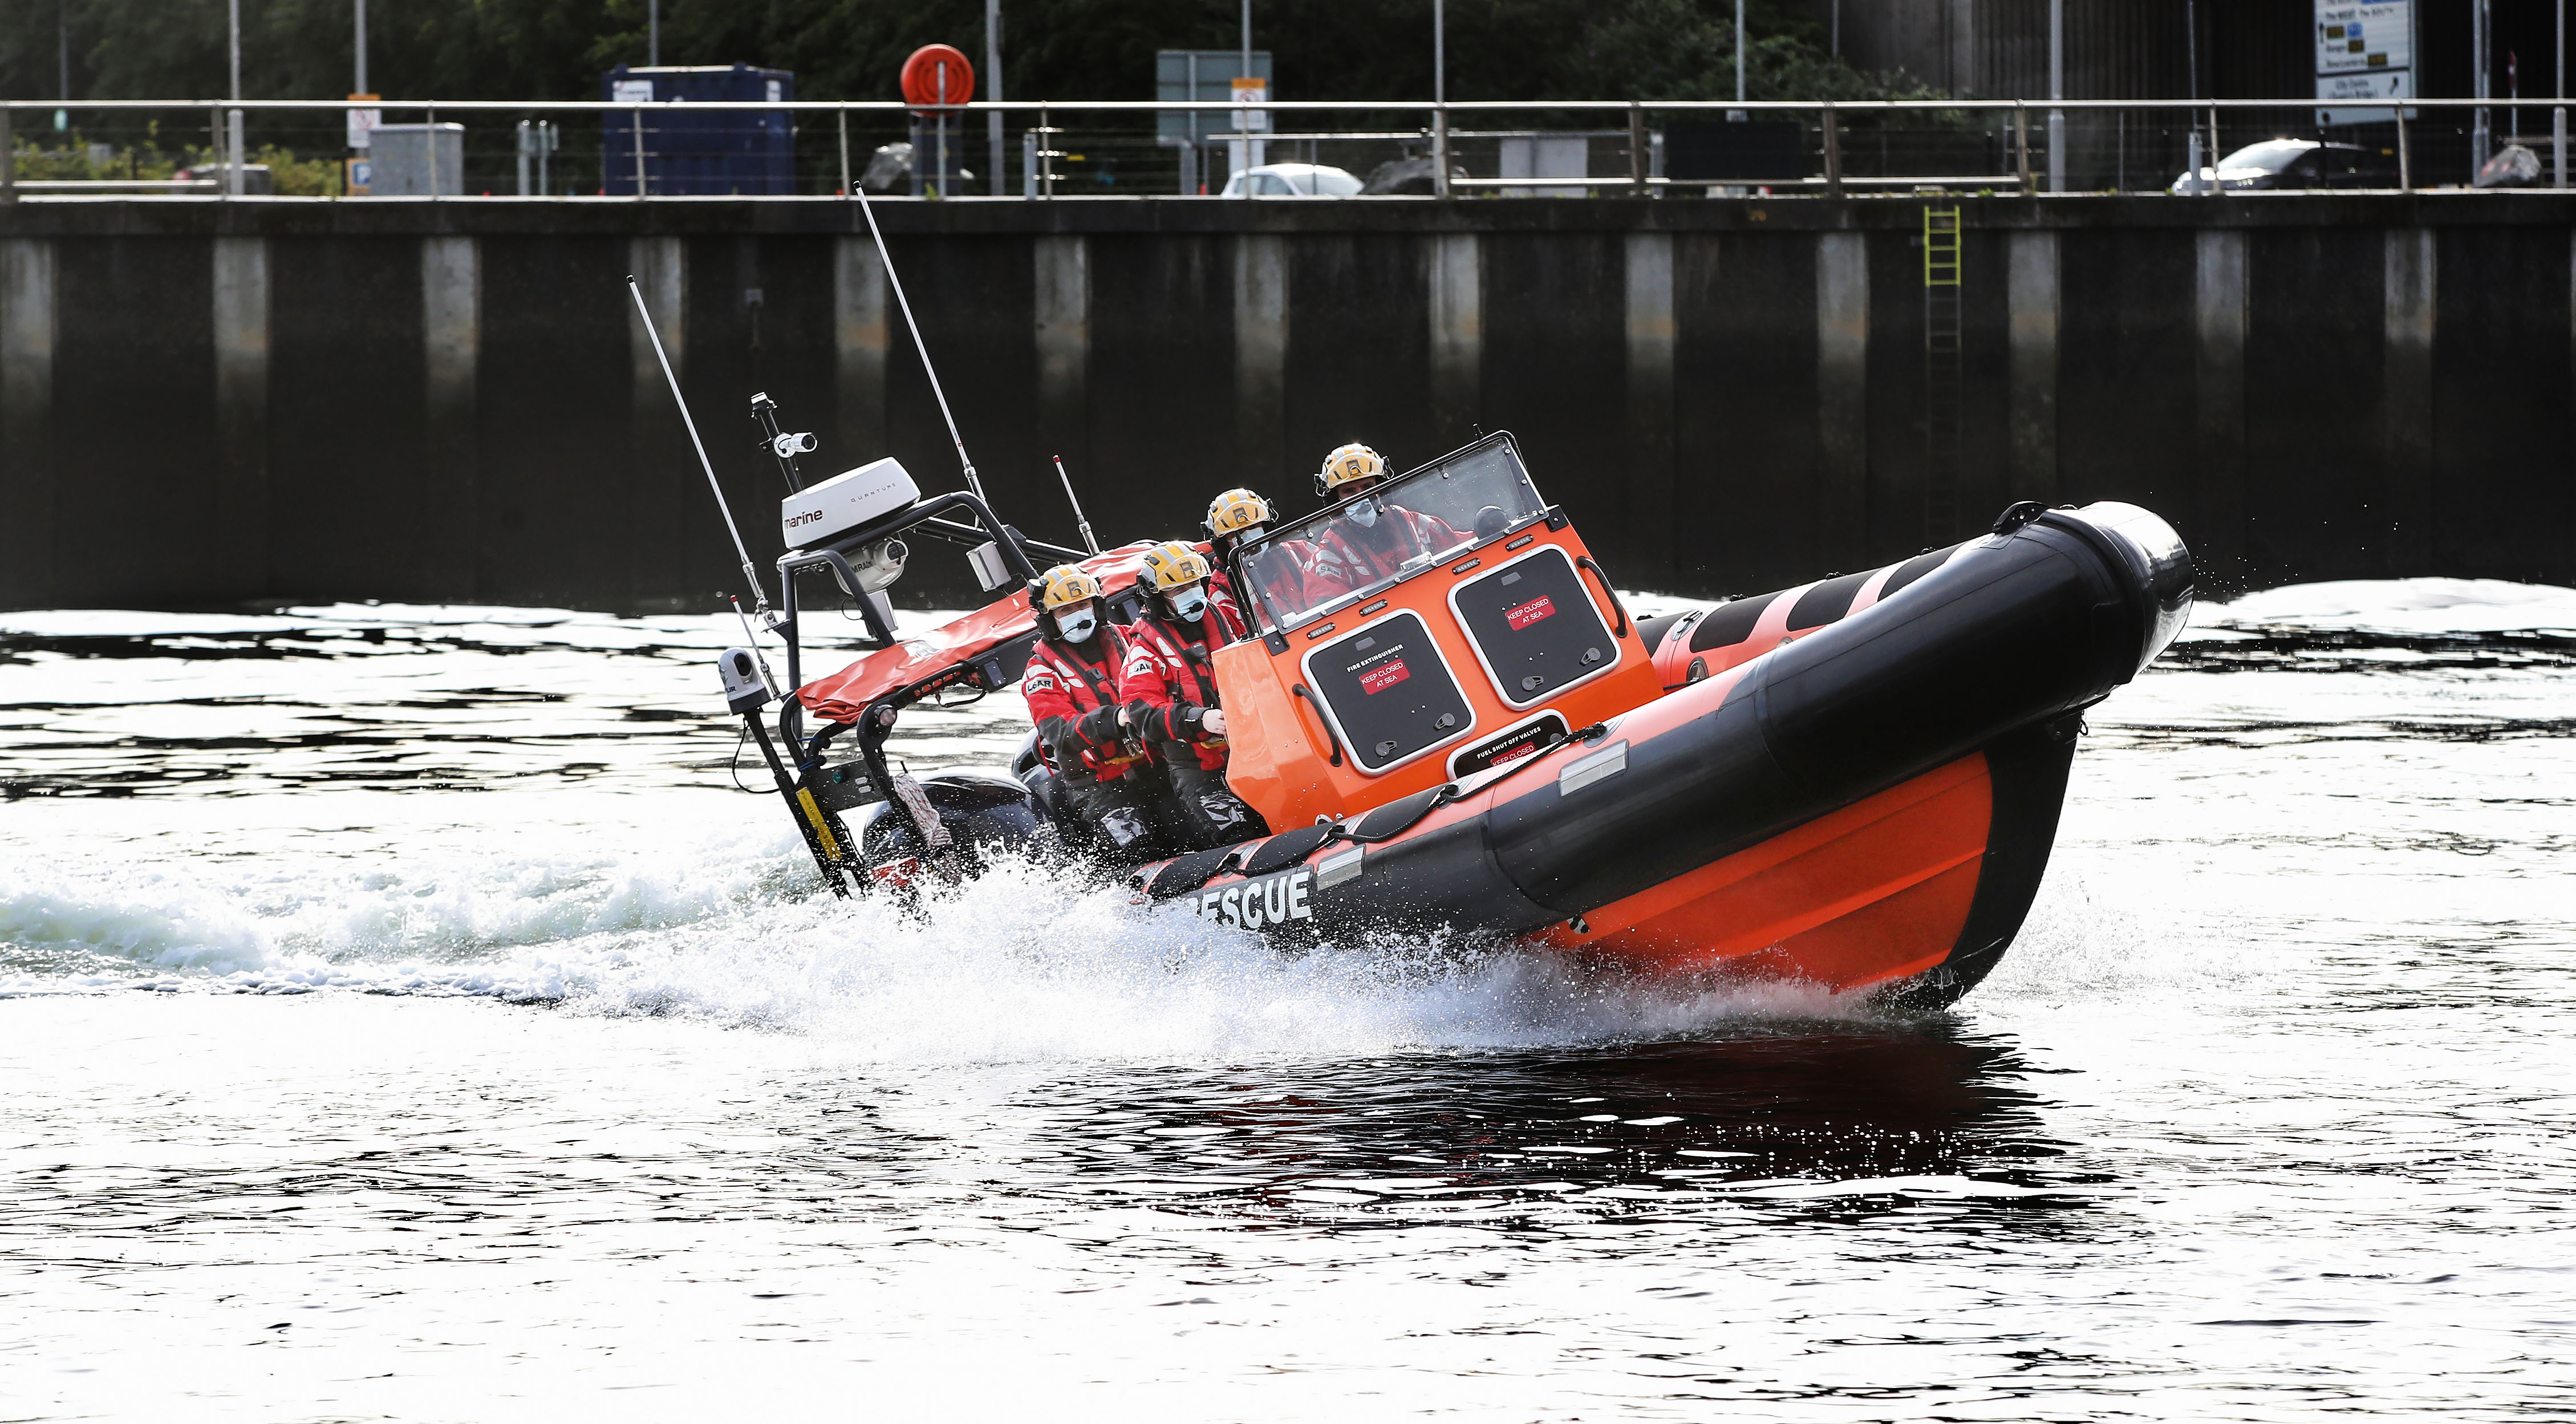 Lagan Search & Rescue boat Image (from Harbour)